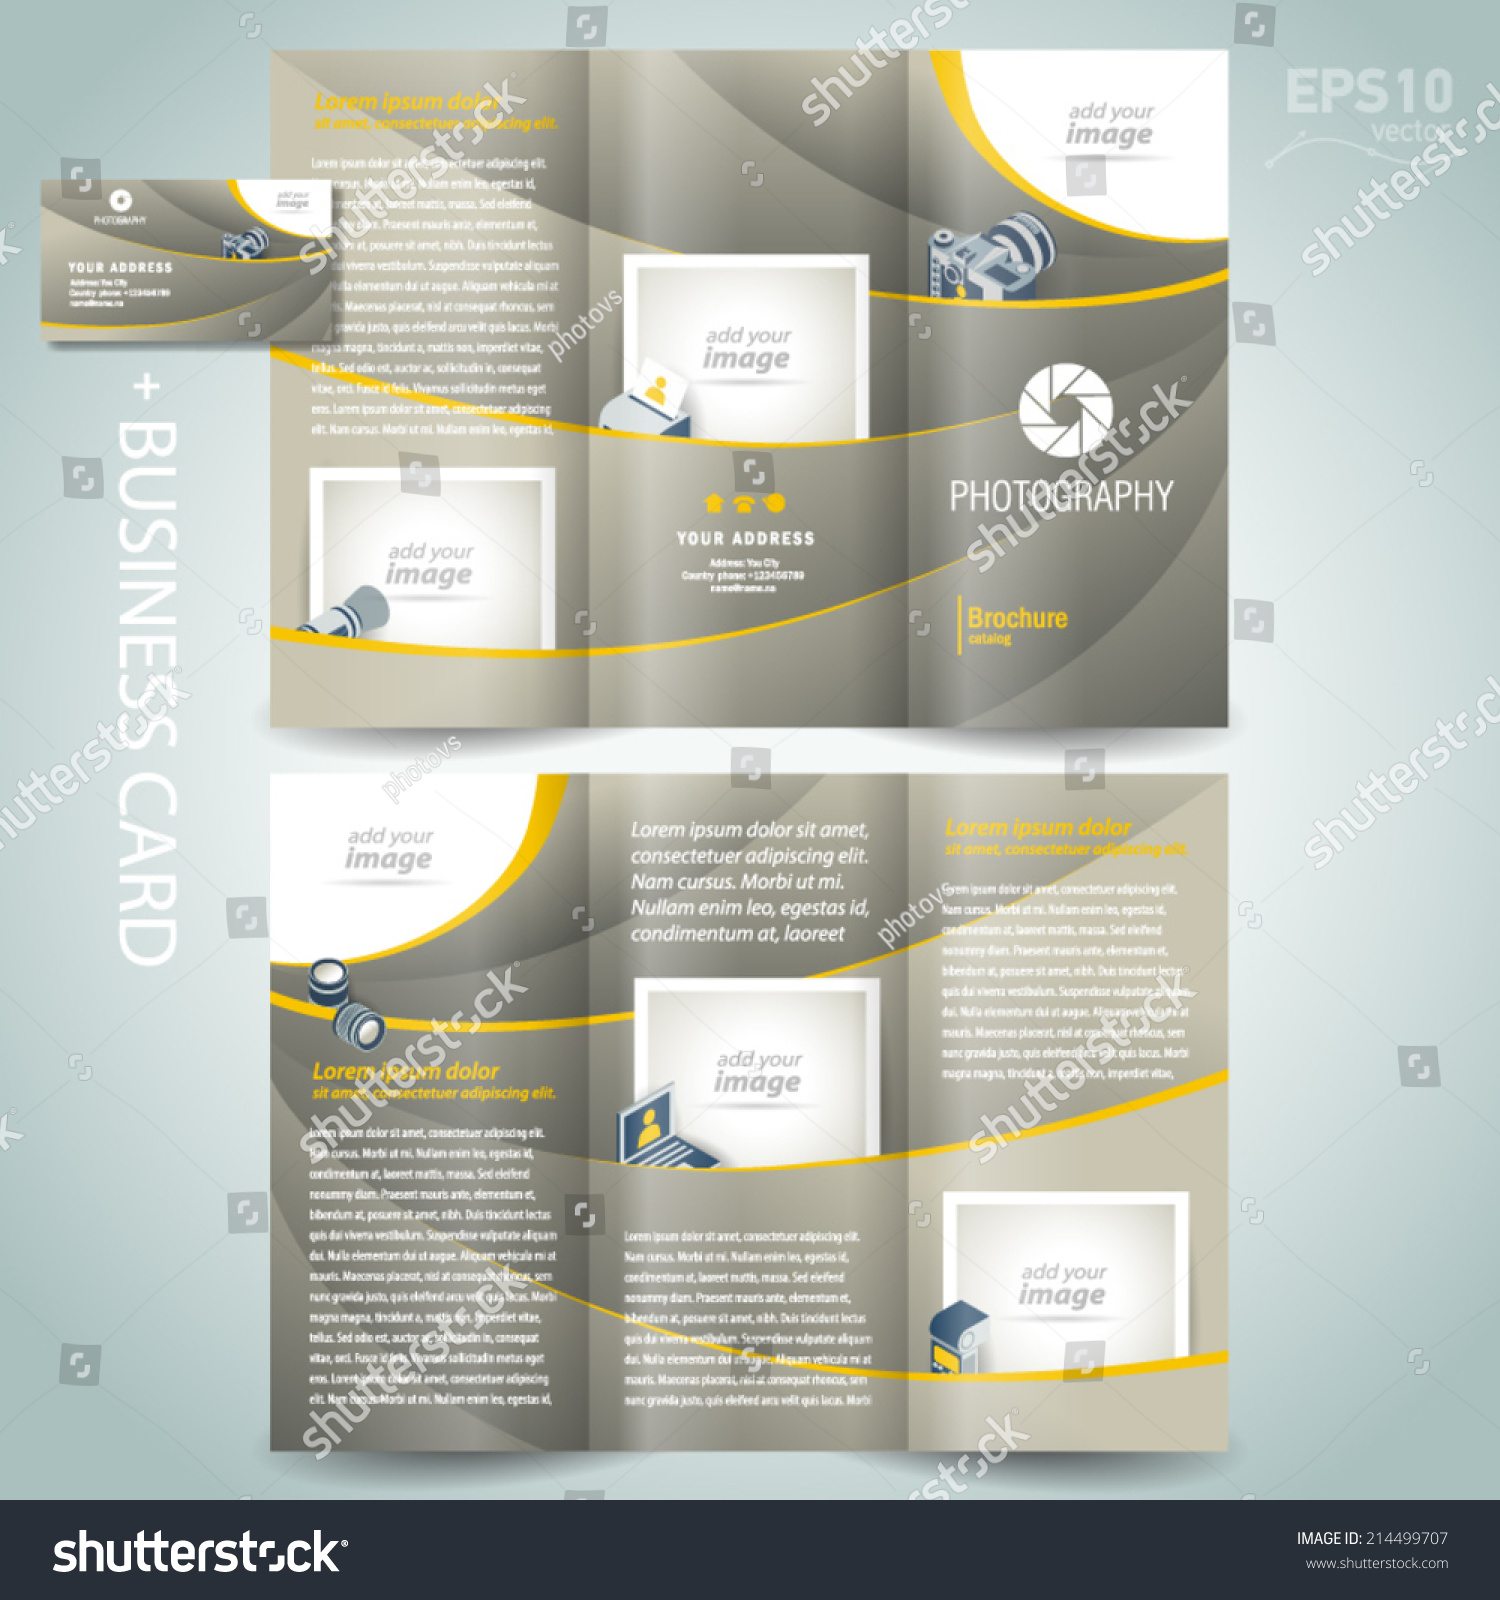 graphy Brochure Design Template Diaphragm Stock Vector